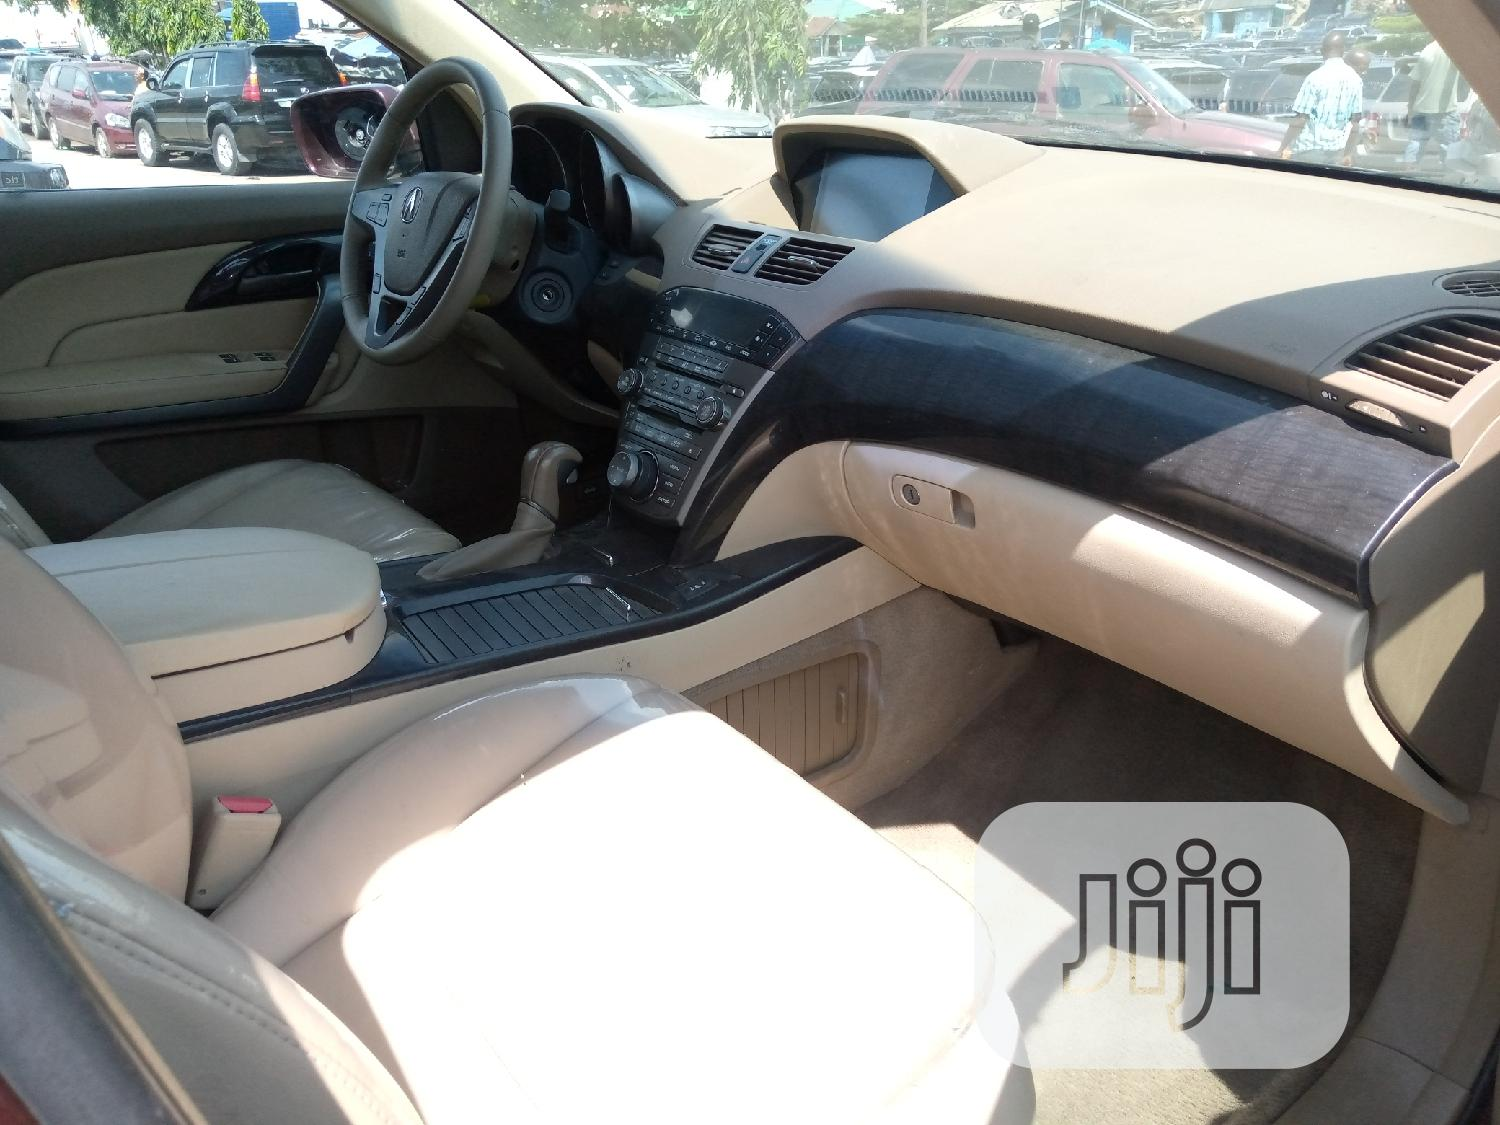 Acura MDX 2008 SUV 4dr AWD (3.7 6cyl 5A) Brown   Cars for sale in Apapa, Lagos State, Nigeria